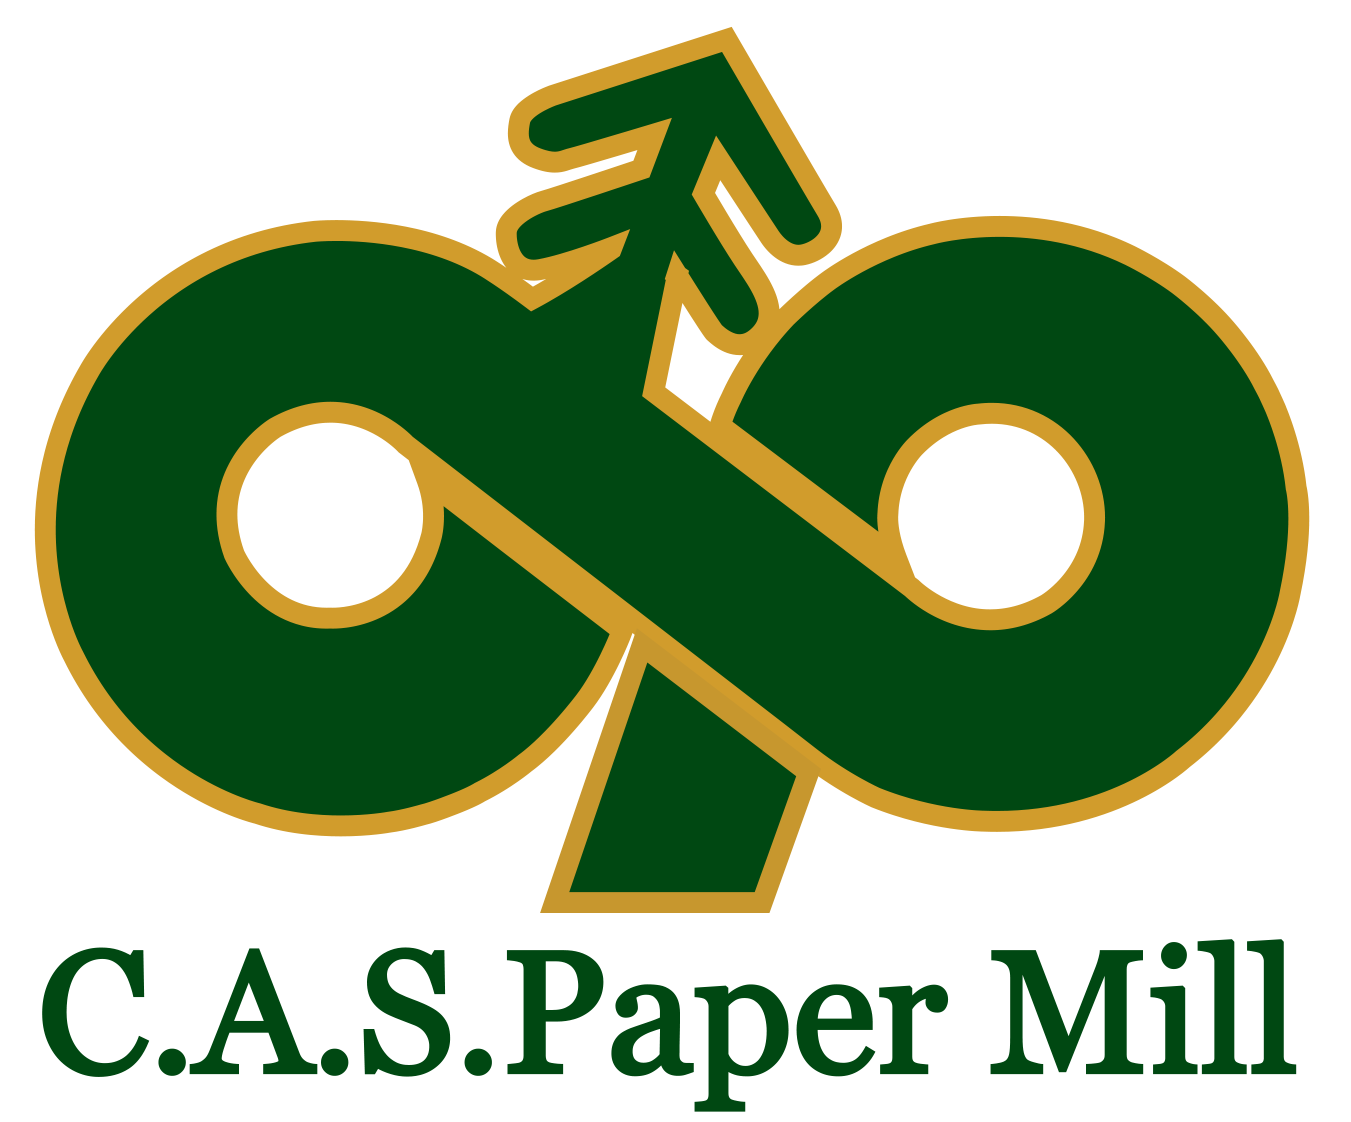 C.A.S Paper Mill Co. Ltd.